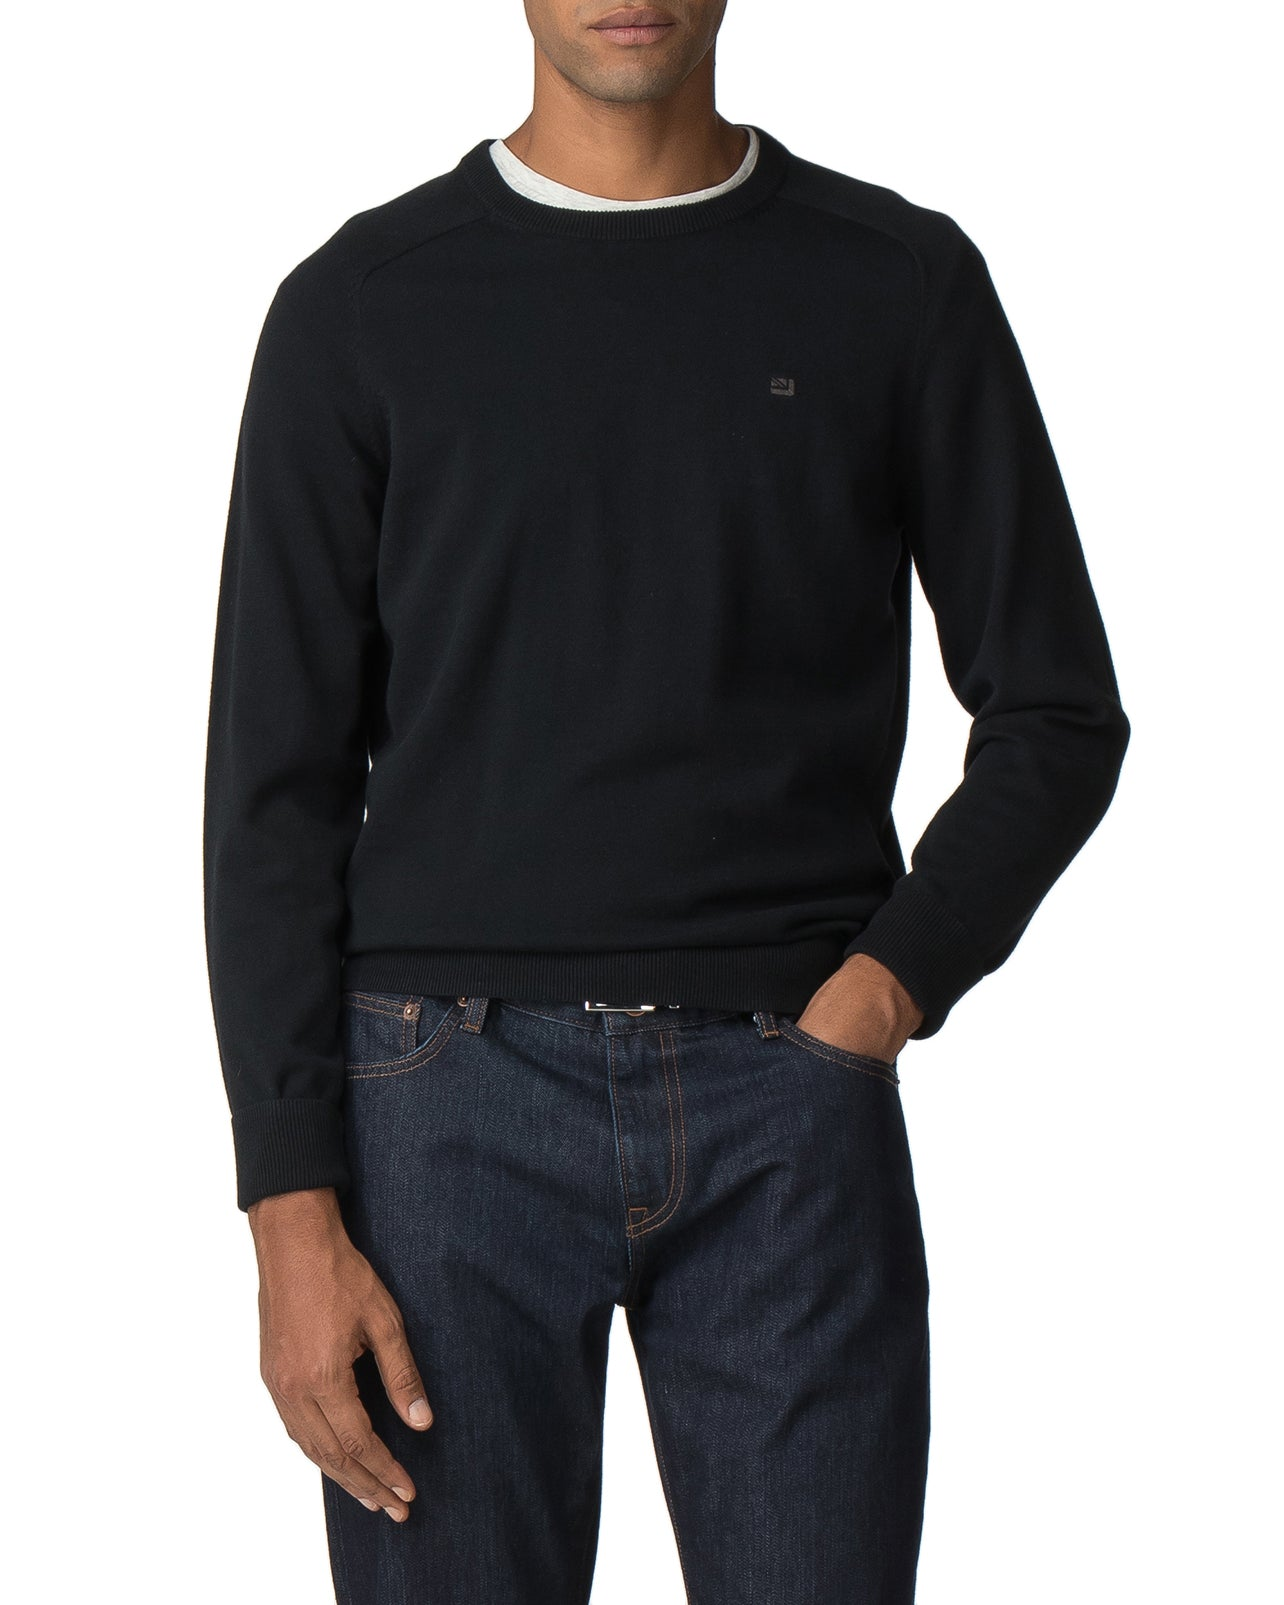 Raglan Sleeve Crewneck Sweater - True Black